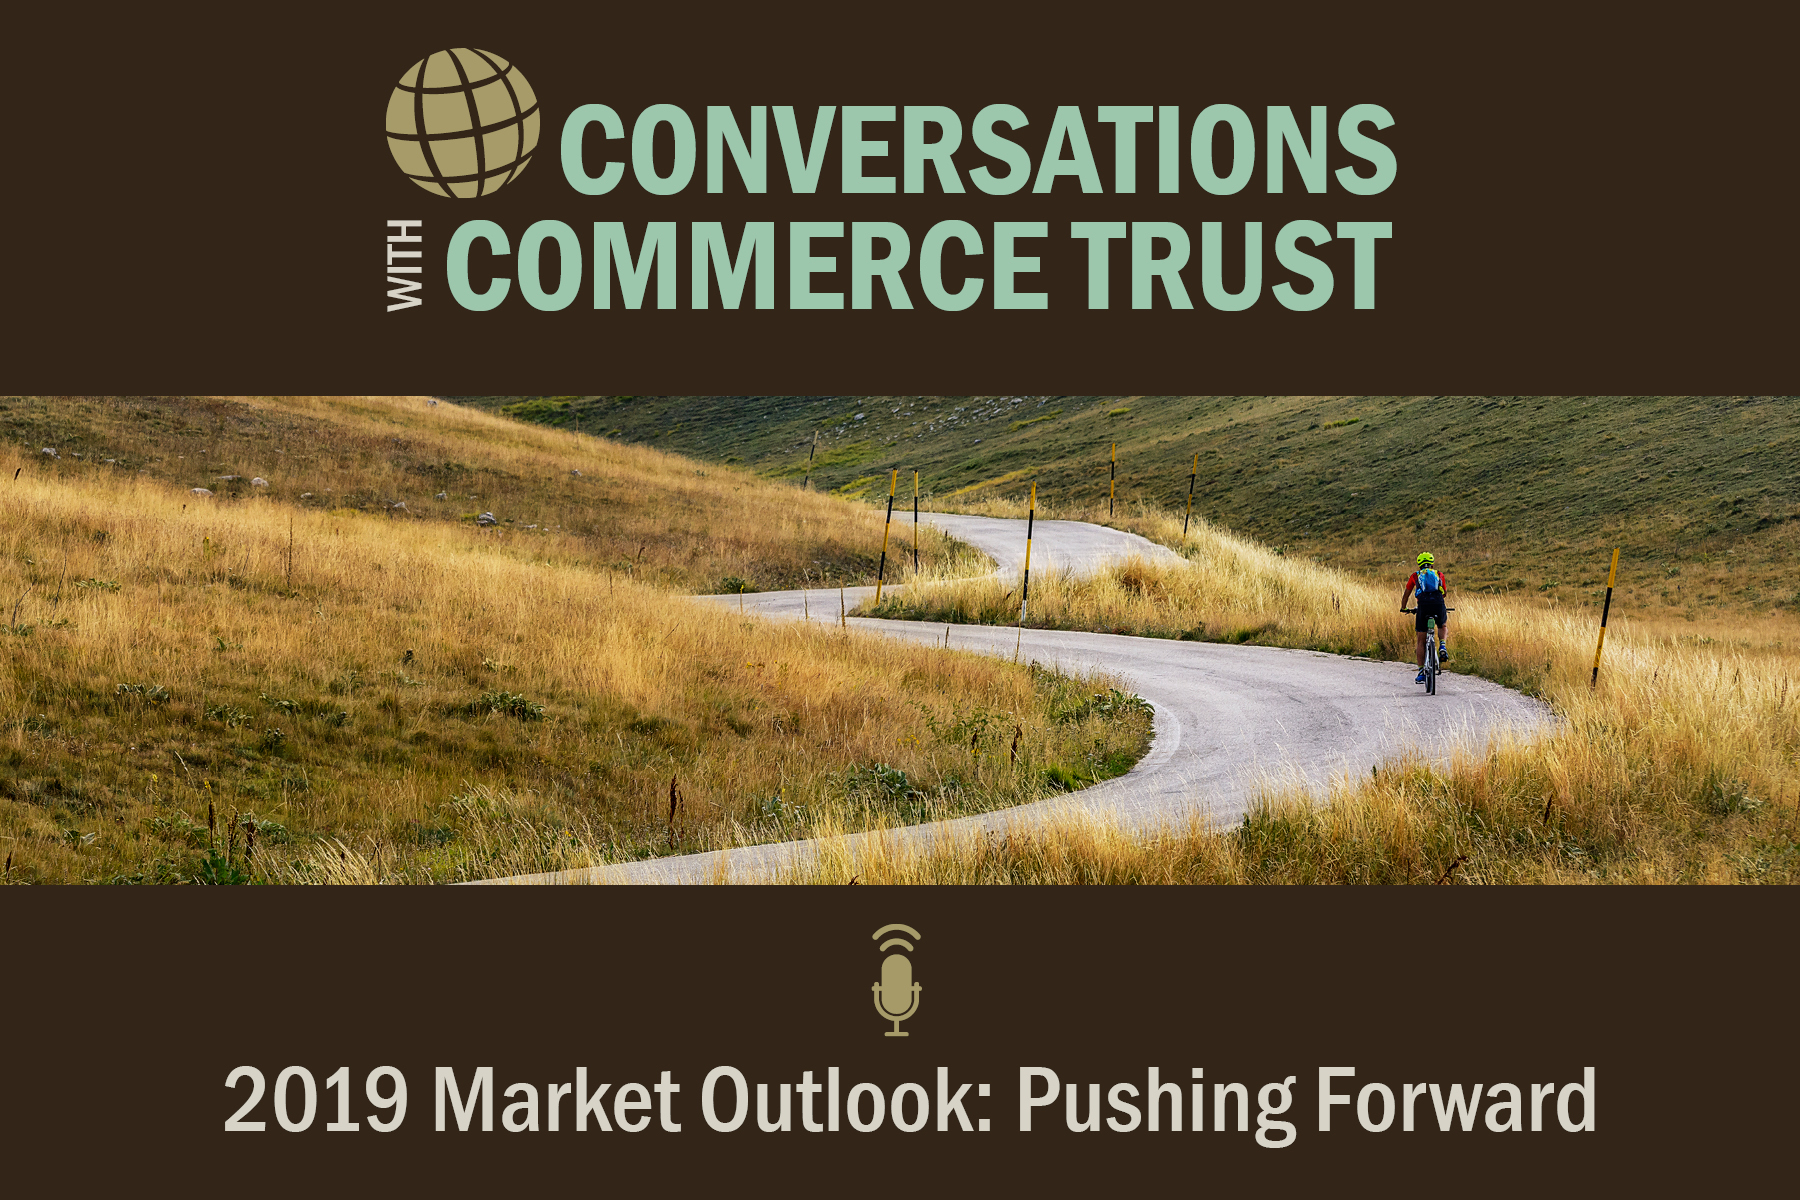 2019 Market Outlook: Pushing Forward